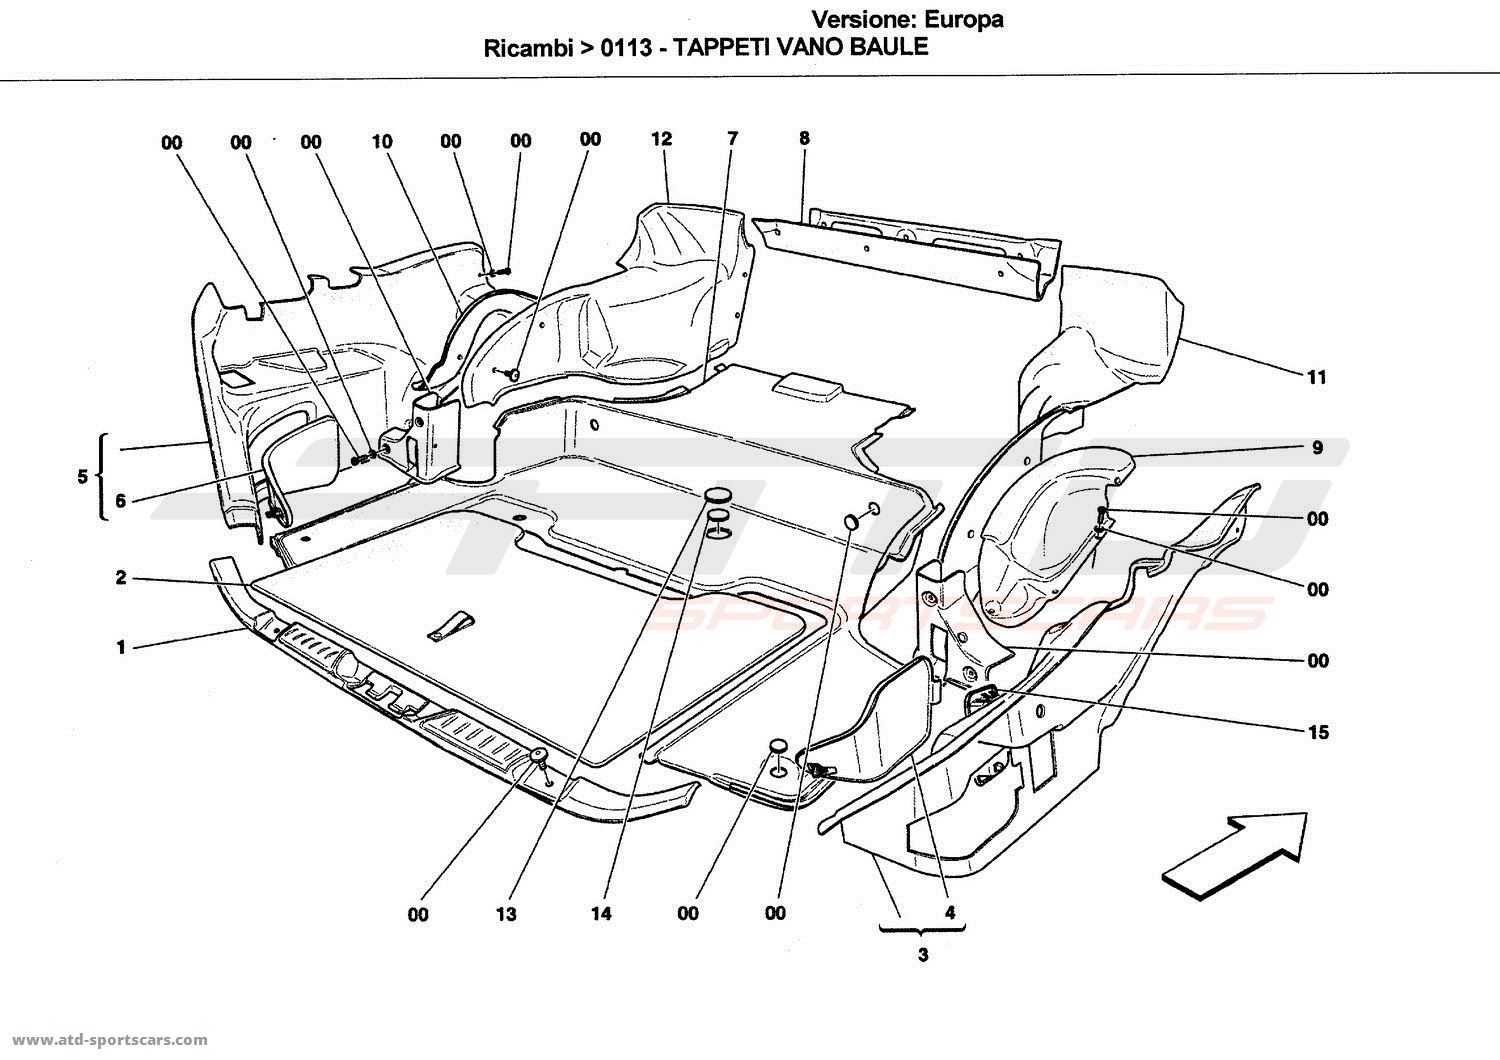 Ferrari California Luggage Compartment Mats Parts At Atd Sportscars Mariner Outboard Wiring Diagram